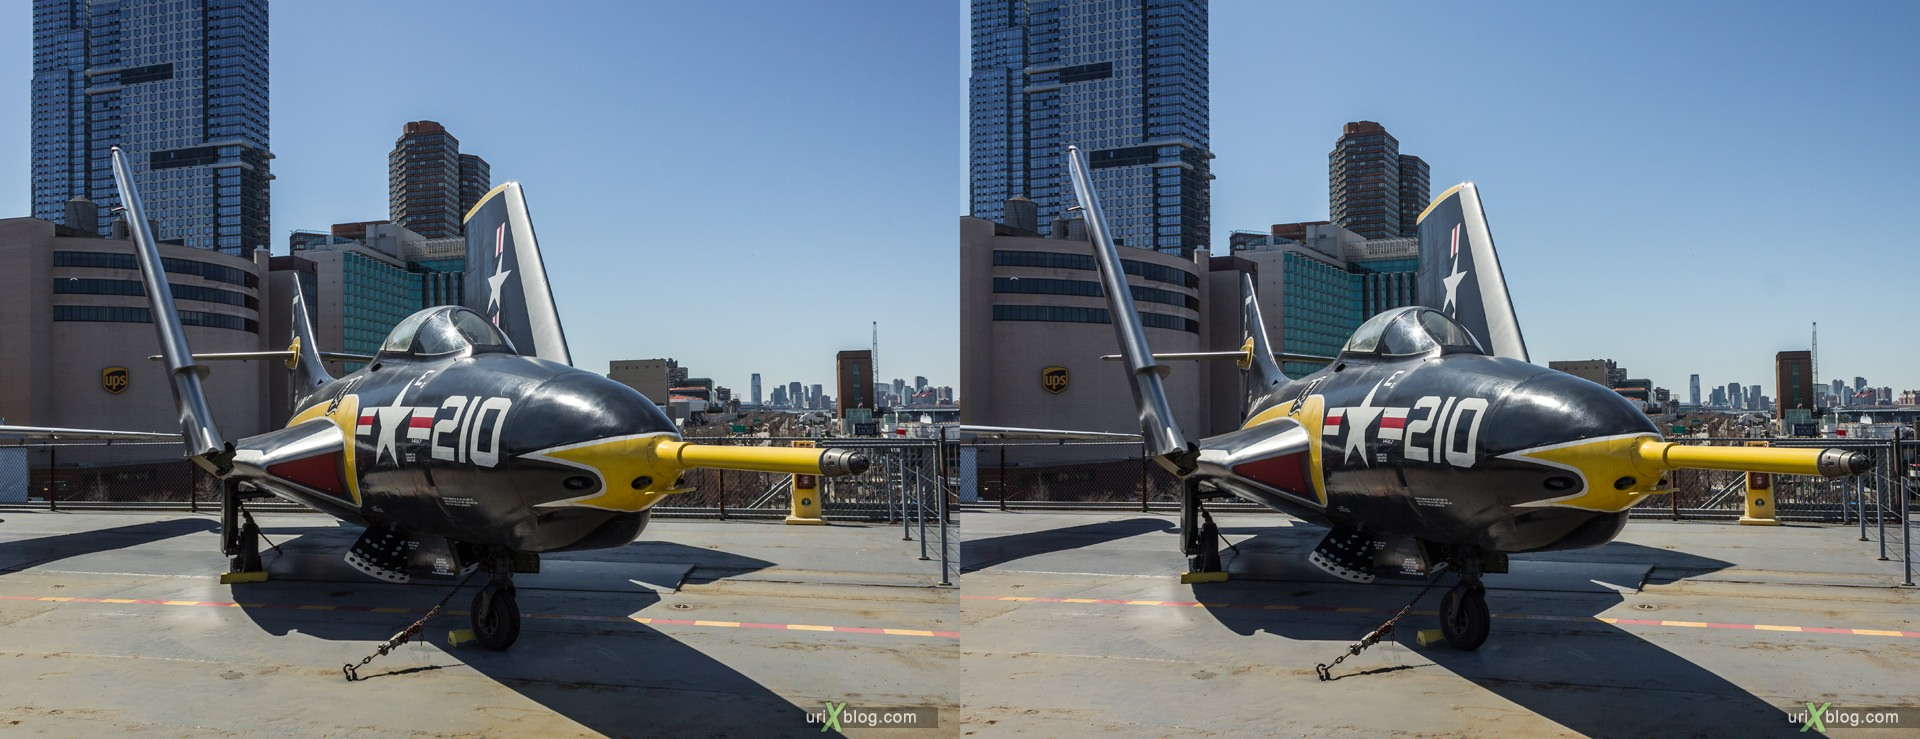 2013, USA, NYC, New York, aircraft carrier Intrepid museum, Grumman F9F-8 (AF-9J) Cougar, sea, air, space, ship, submarine, aircraft, airplane, helicopter, military, 3D, stereo pair, cross-eyed, crossview, cross view stereo pair, stereoscopic